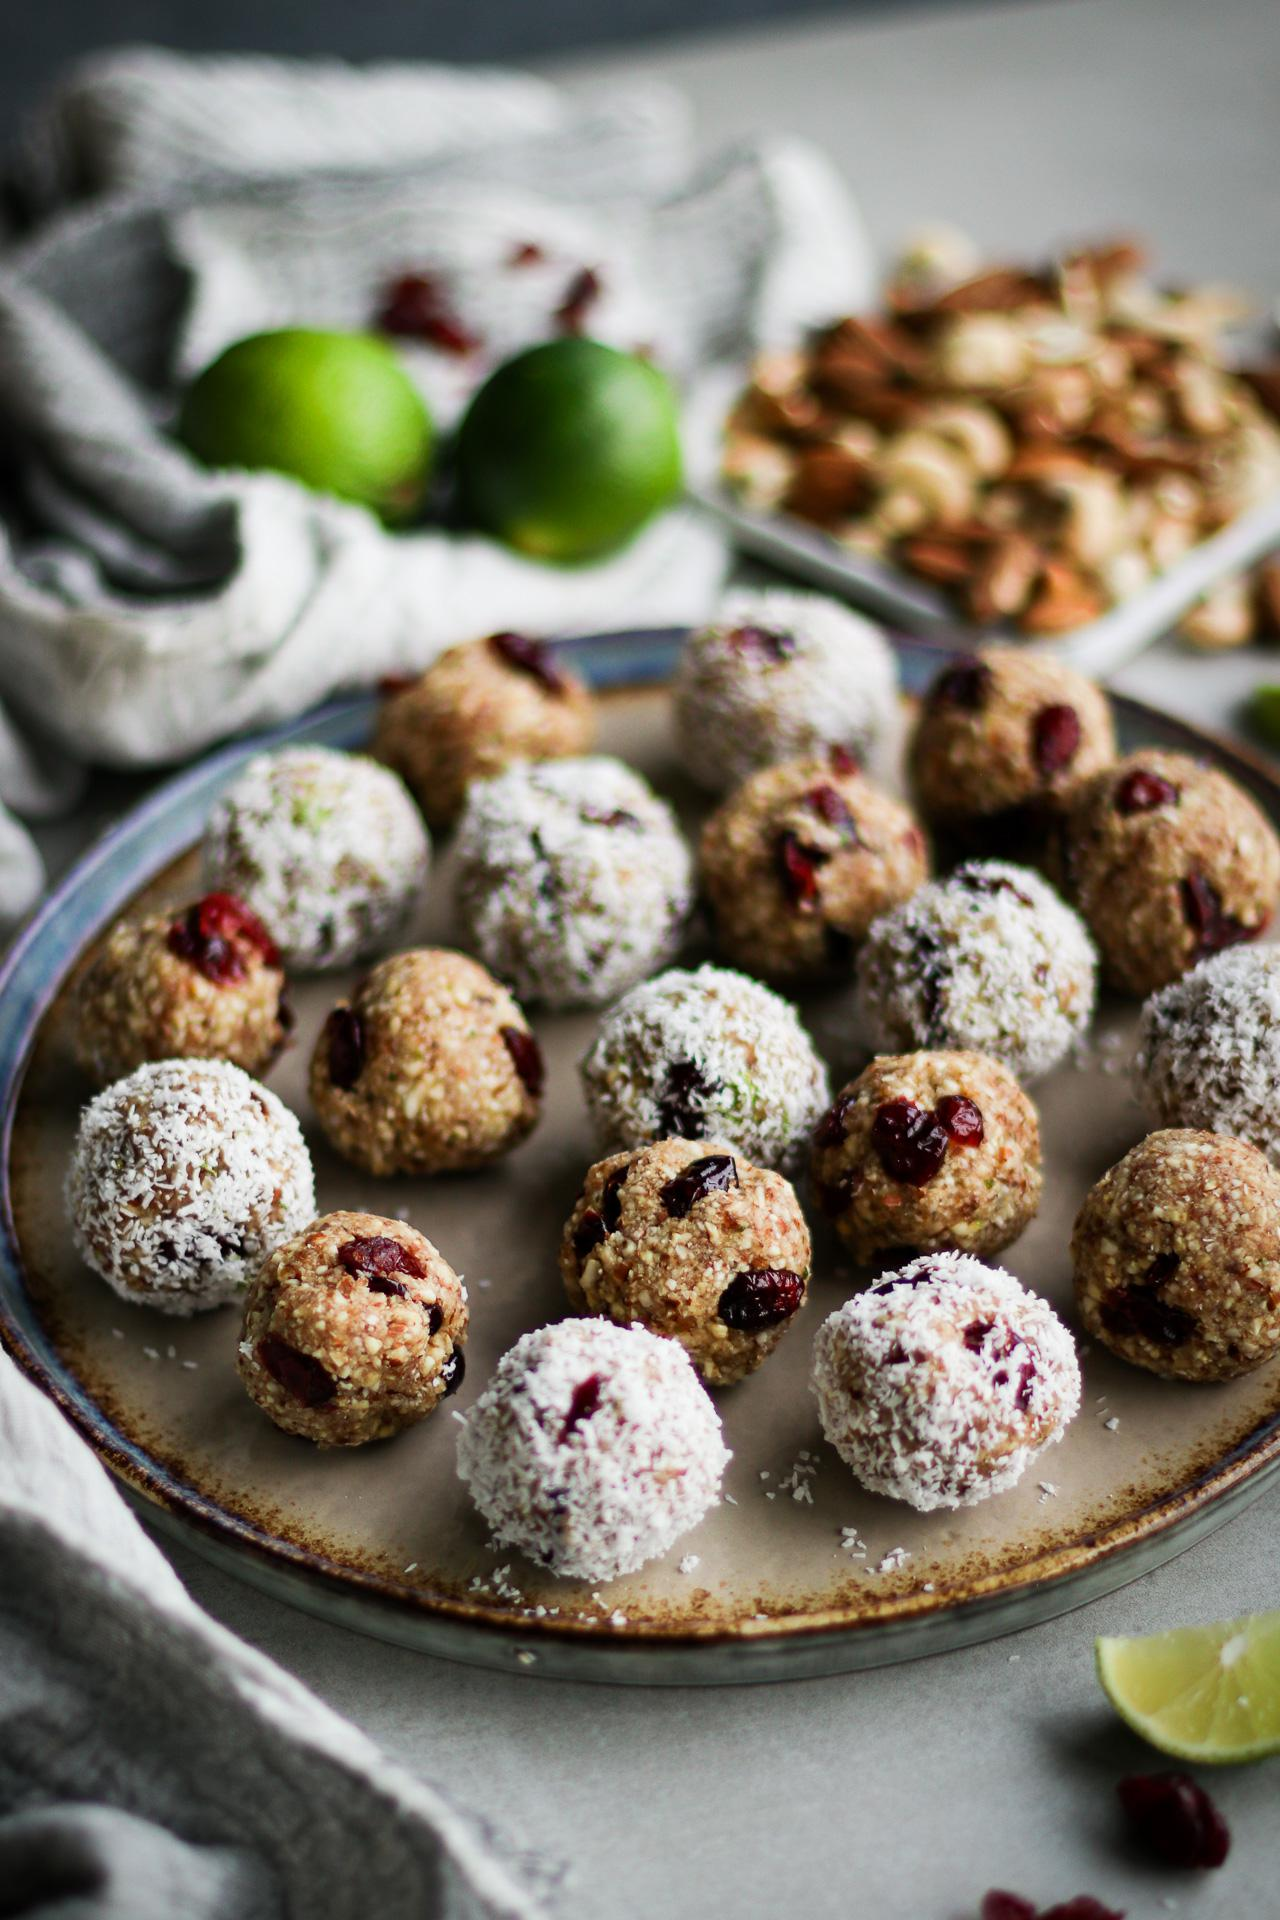 Main image of Cranberry Lime Bliss Balls